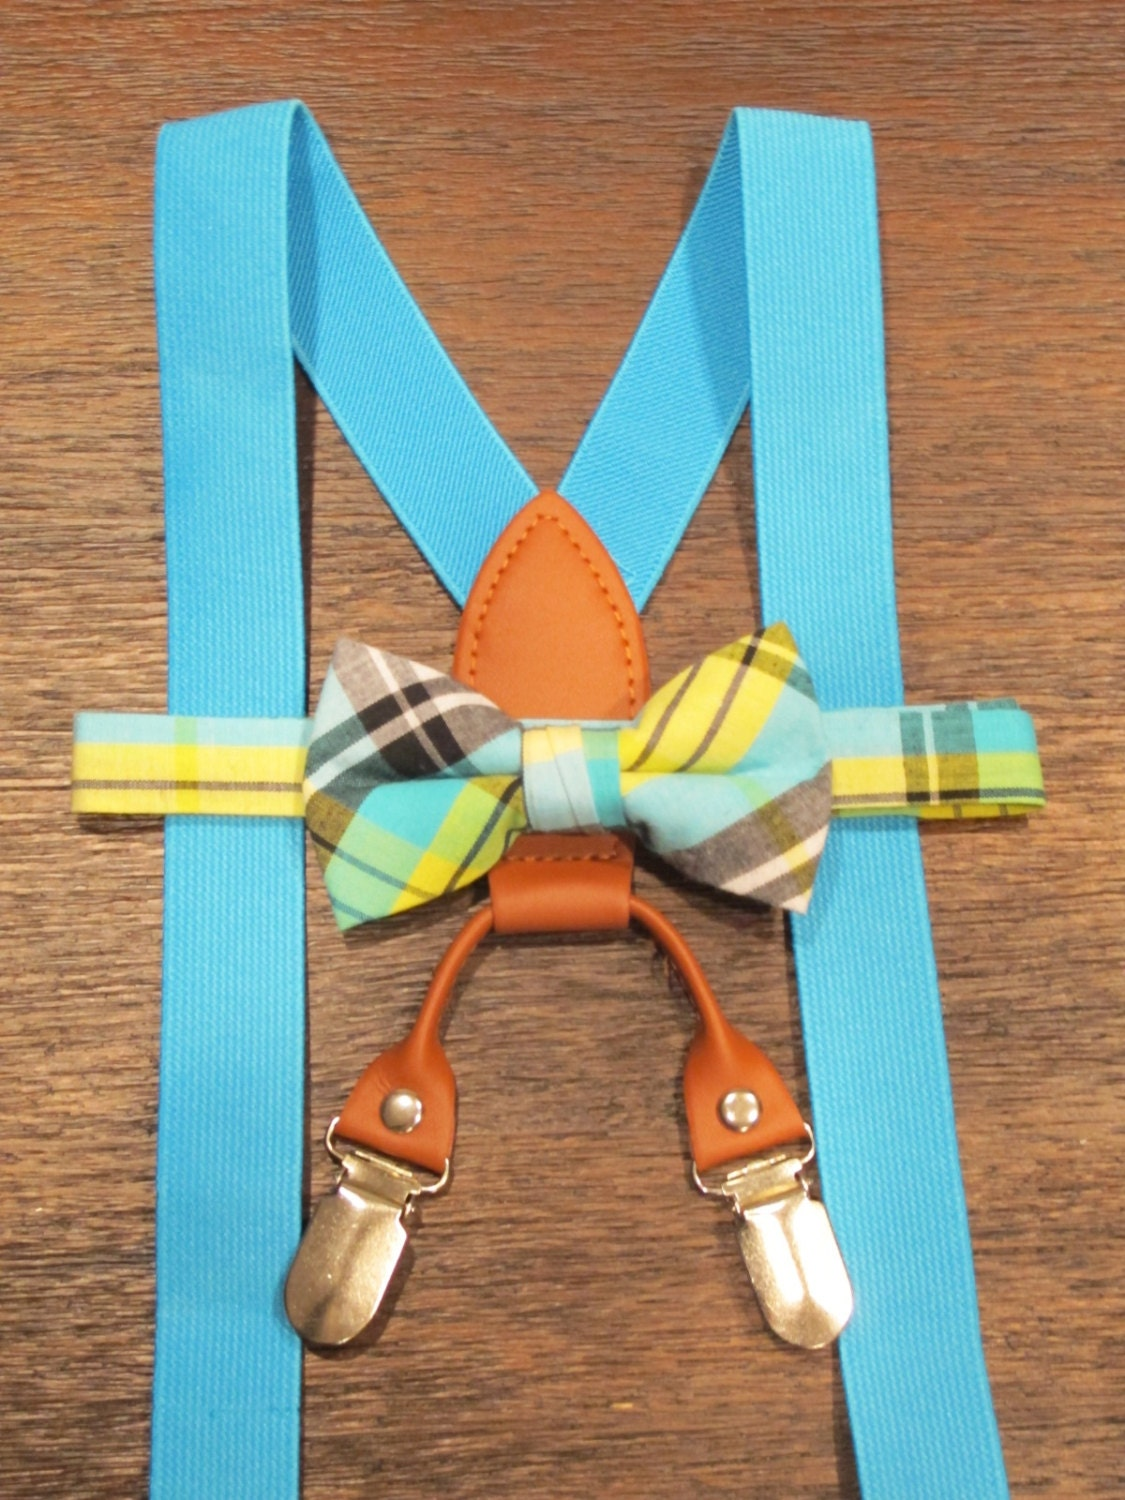 Free shipping on boys' ties at membhobbdownload-zy.ga Shop for the latest ties and bow ties from the best brands. Totally free shipping and returns.